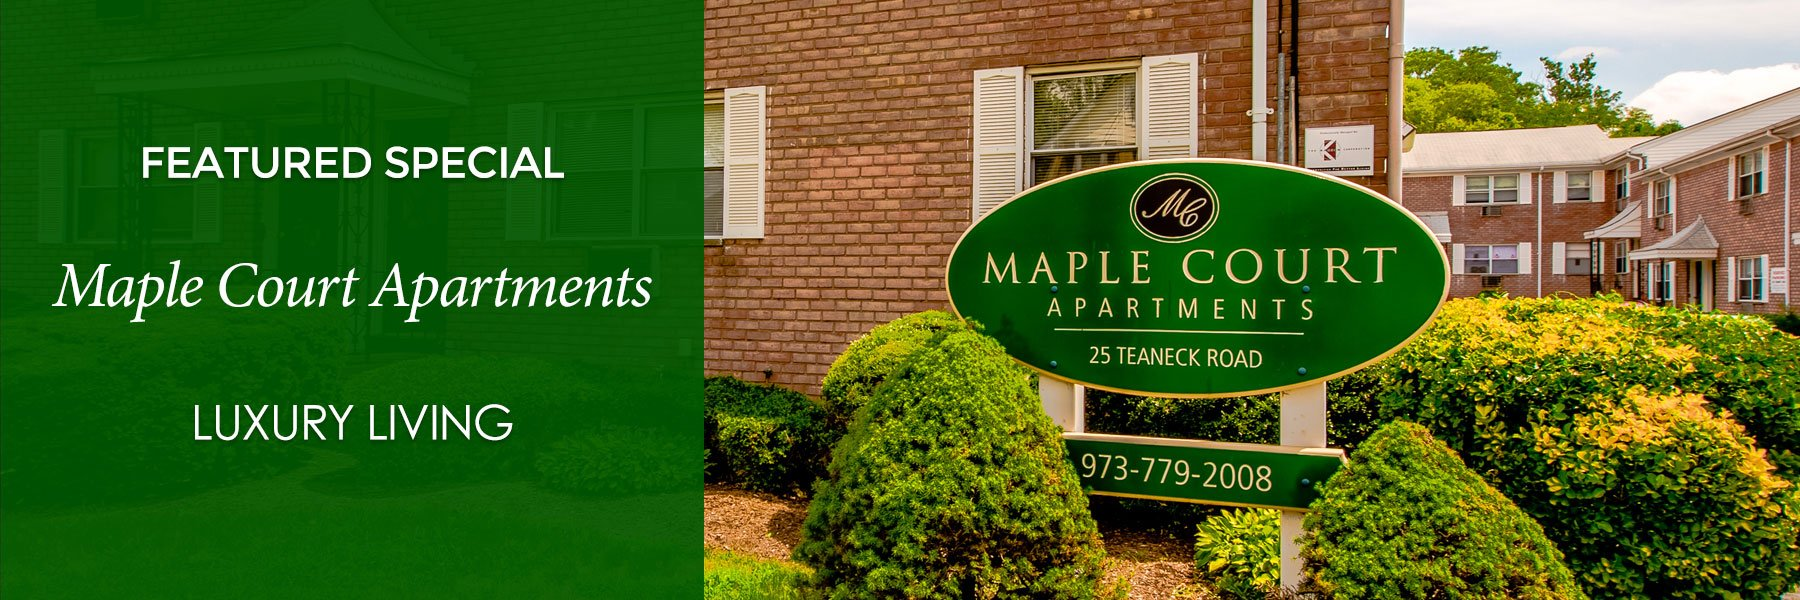 Maple Court Apartments For Rent in Ridgefield Park, NJ Specials